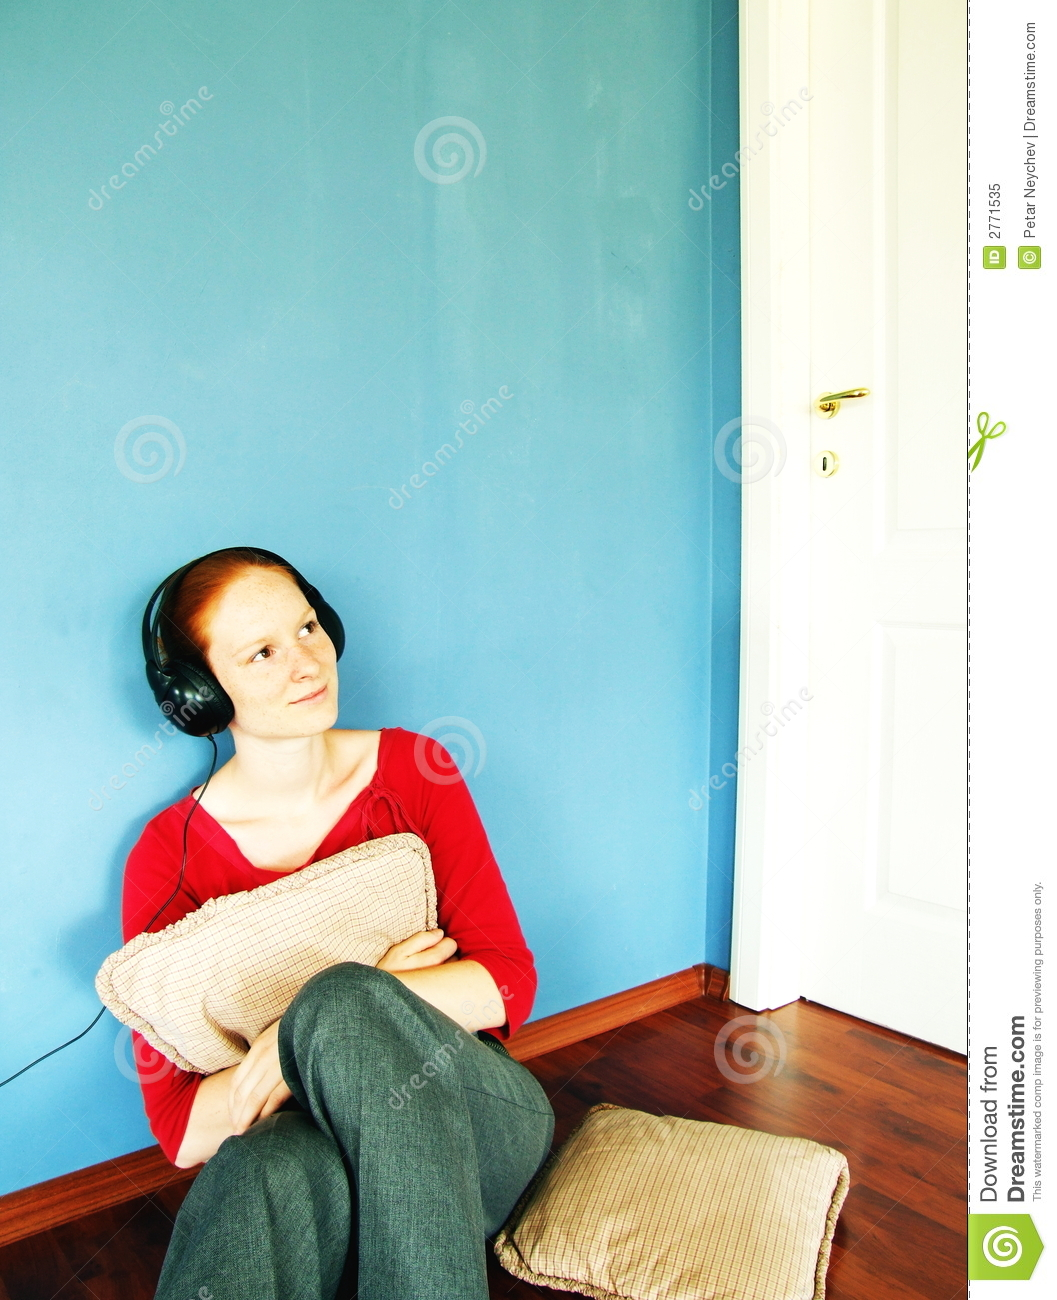 Listening to music at home royalty free stock photo for Listen to house music